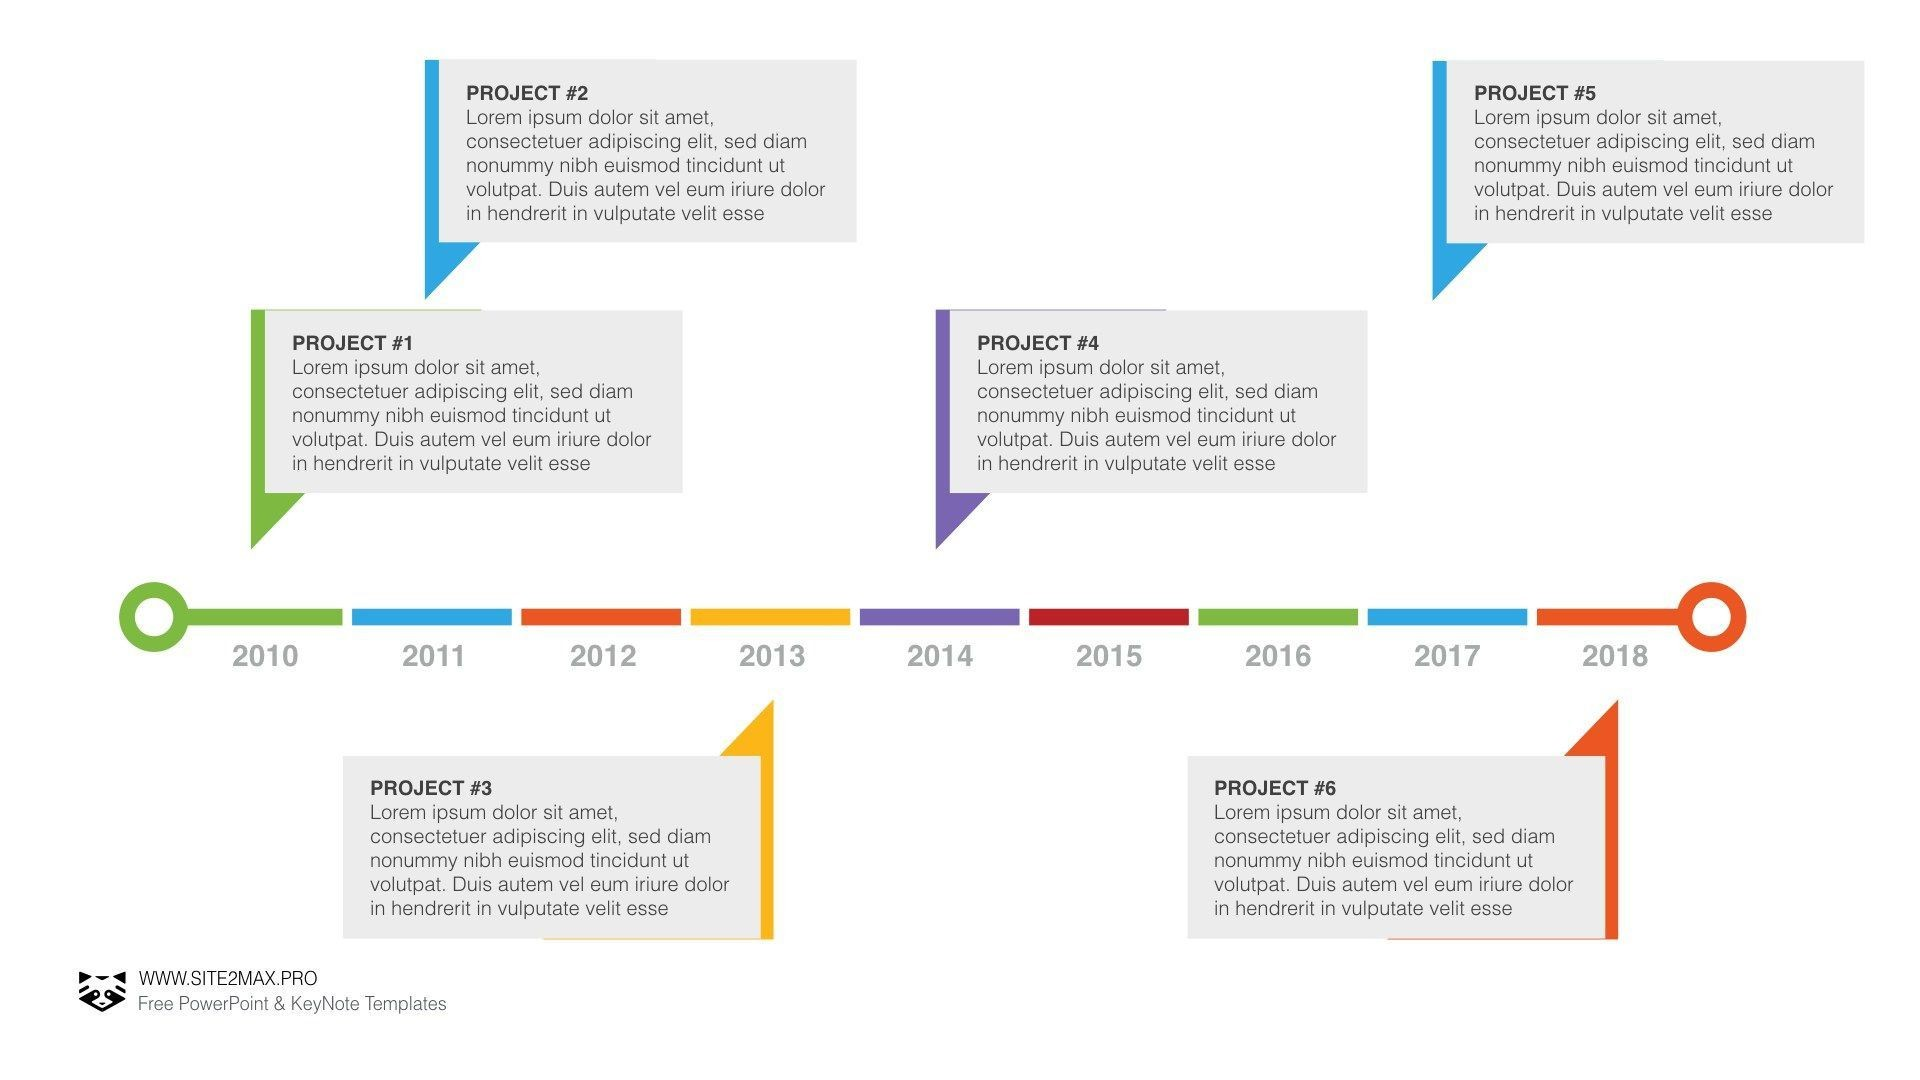 004 Exceptional Timeline Template Ppt Free Download Image  Infographic Powerpoint Project1920